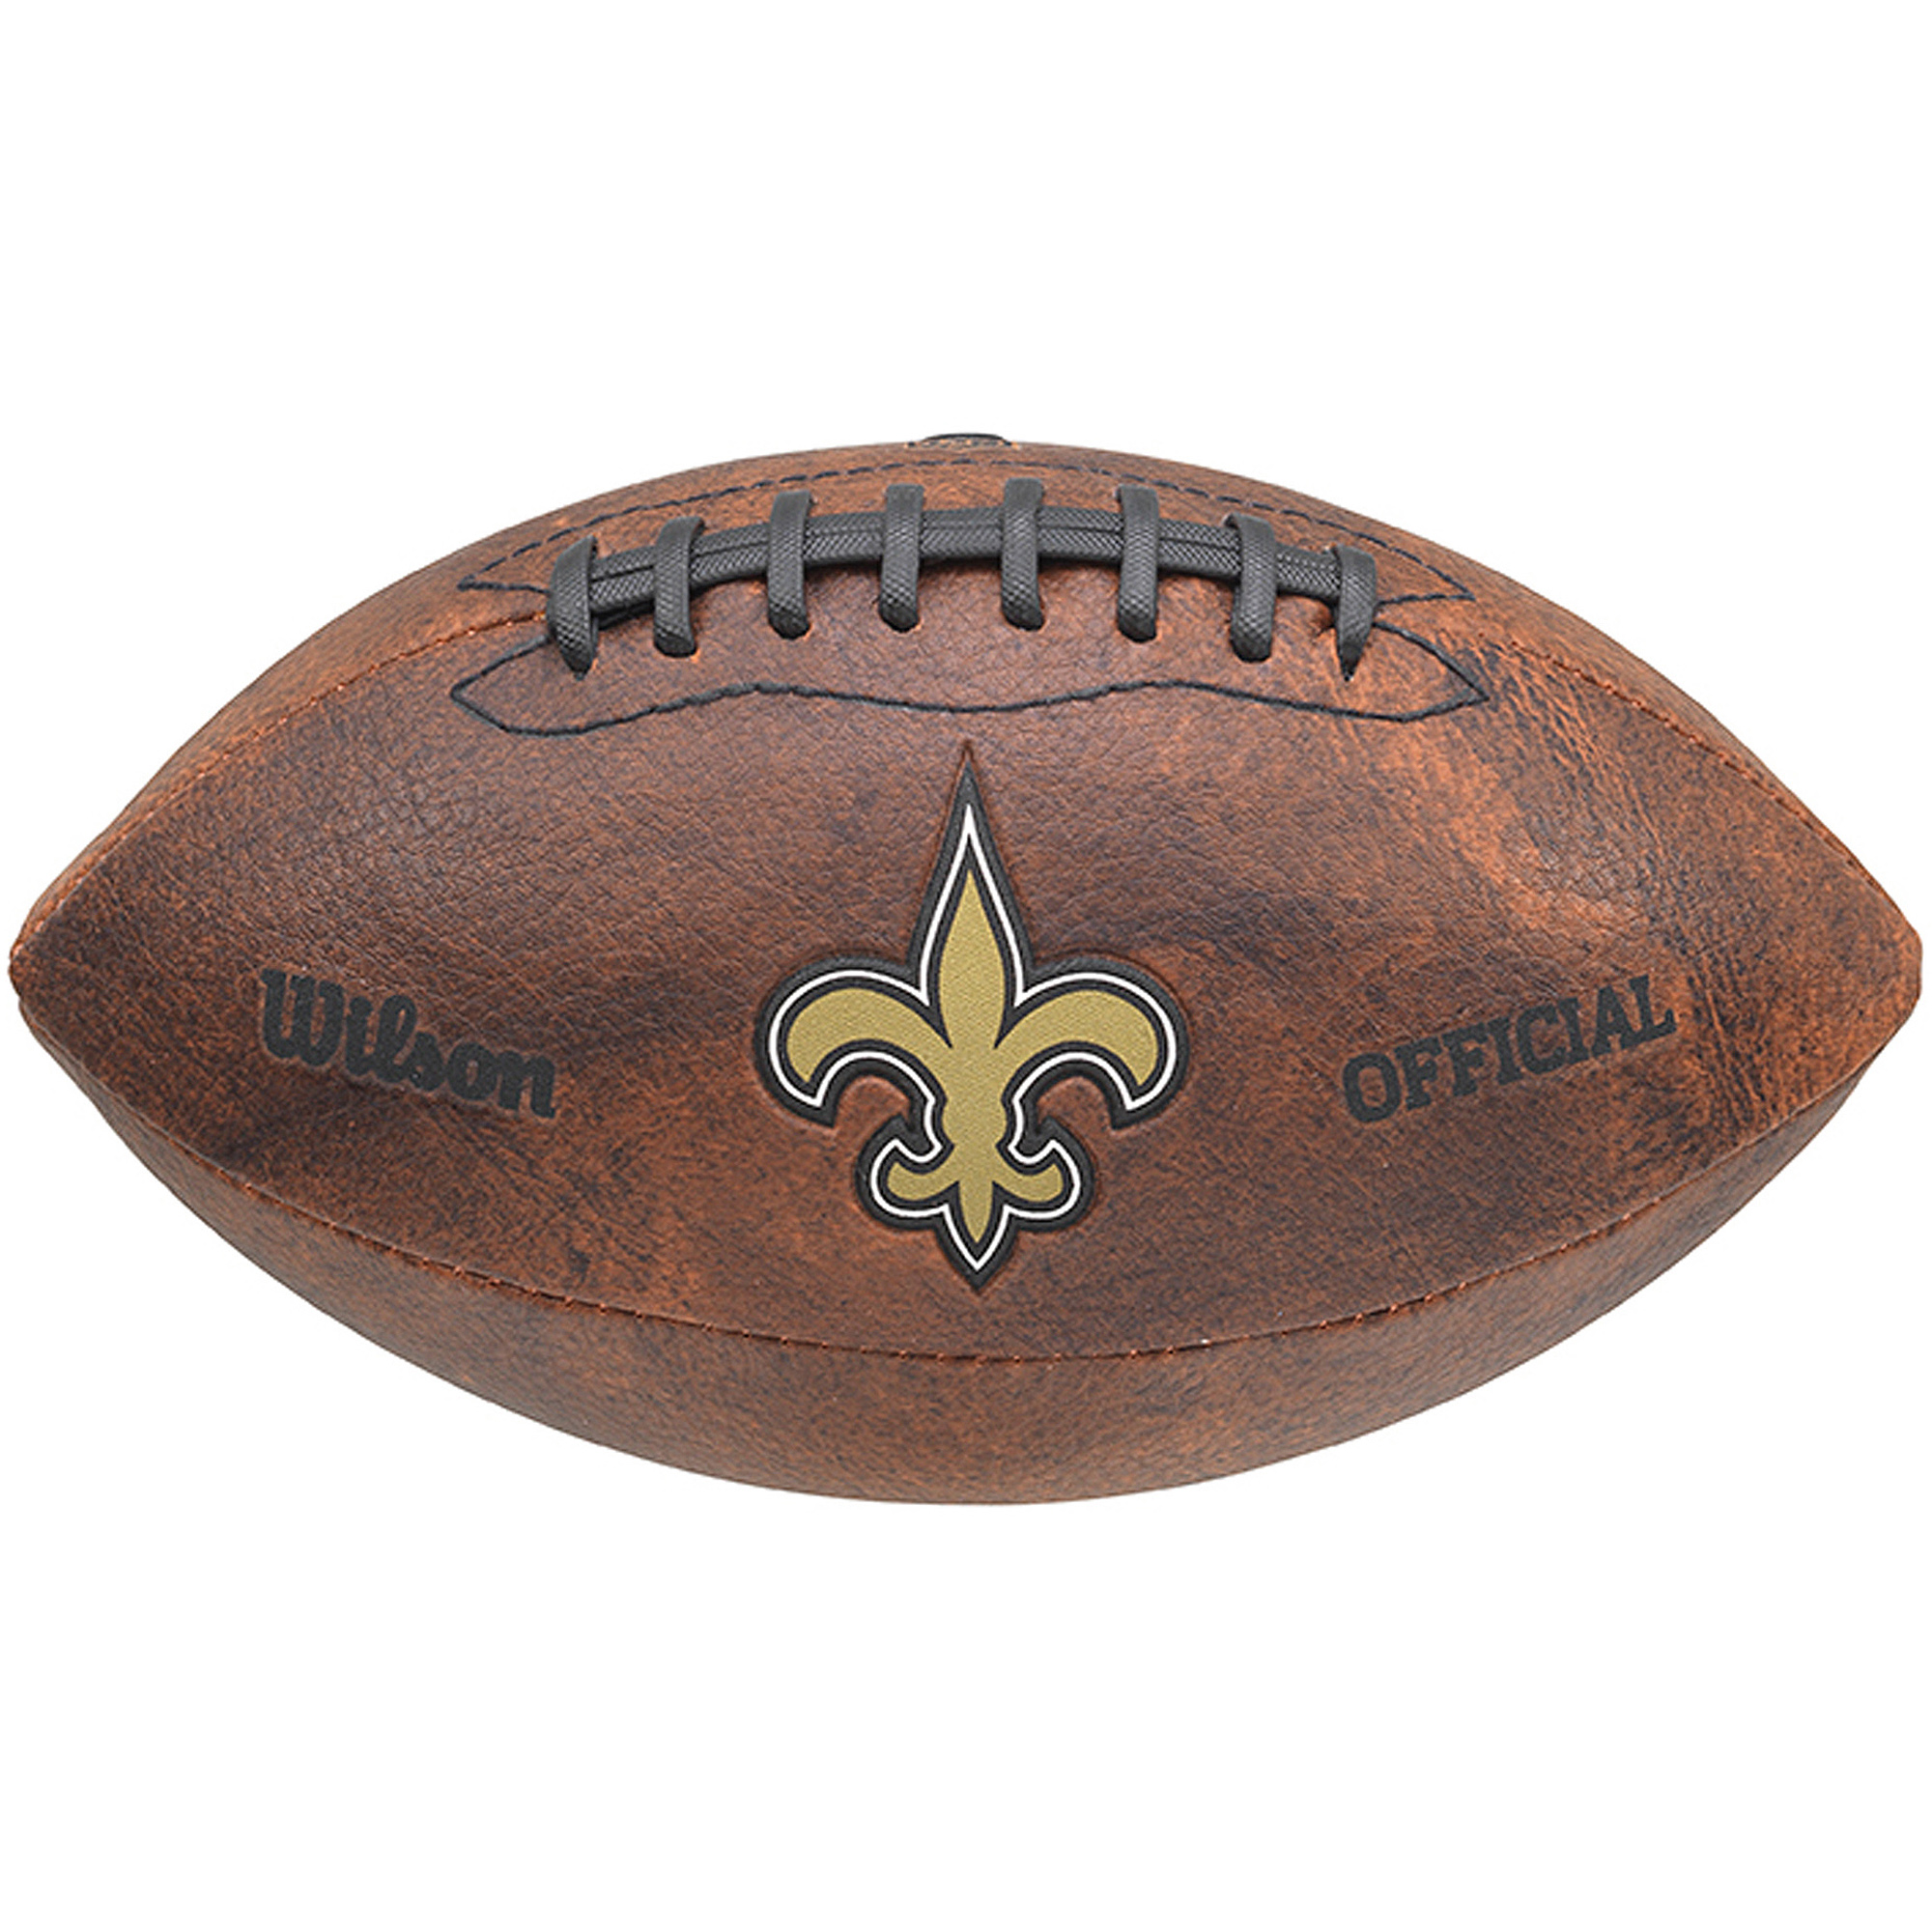 """Wilson NFL 9"""" Color Throwback Football, New Orleans Saints by Gulf Coast Sales"""